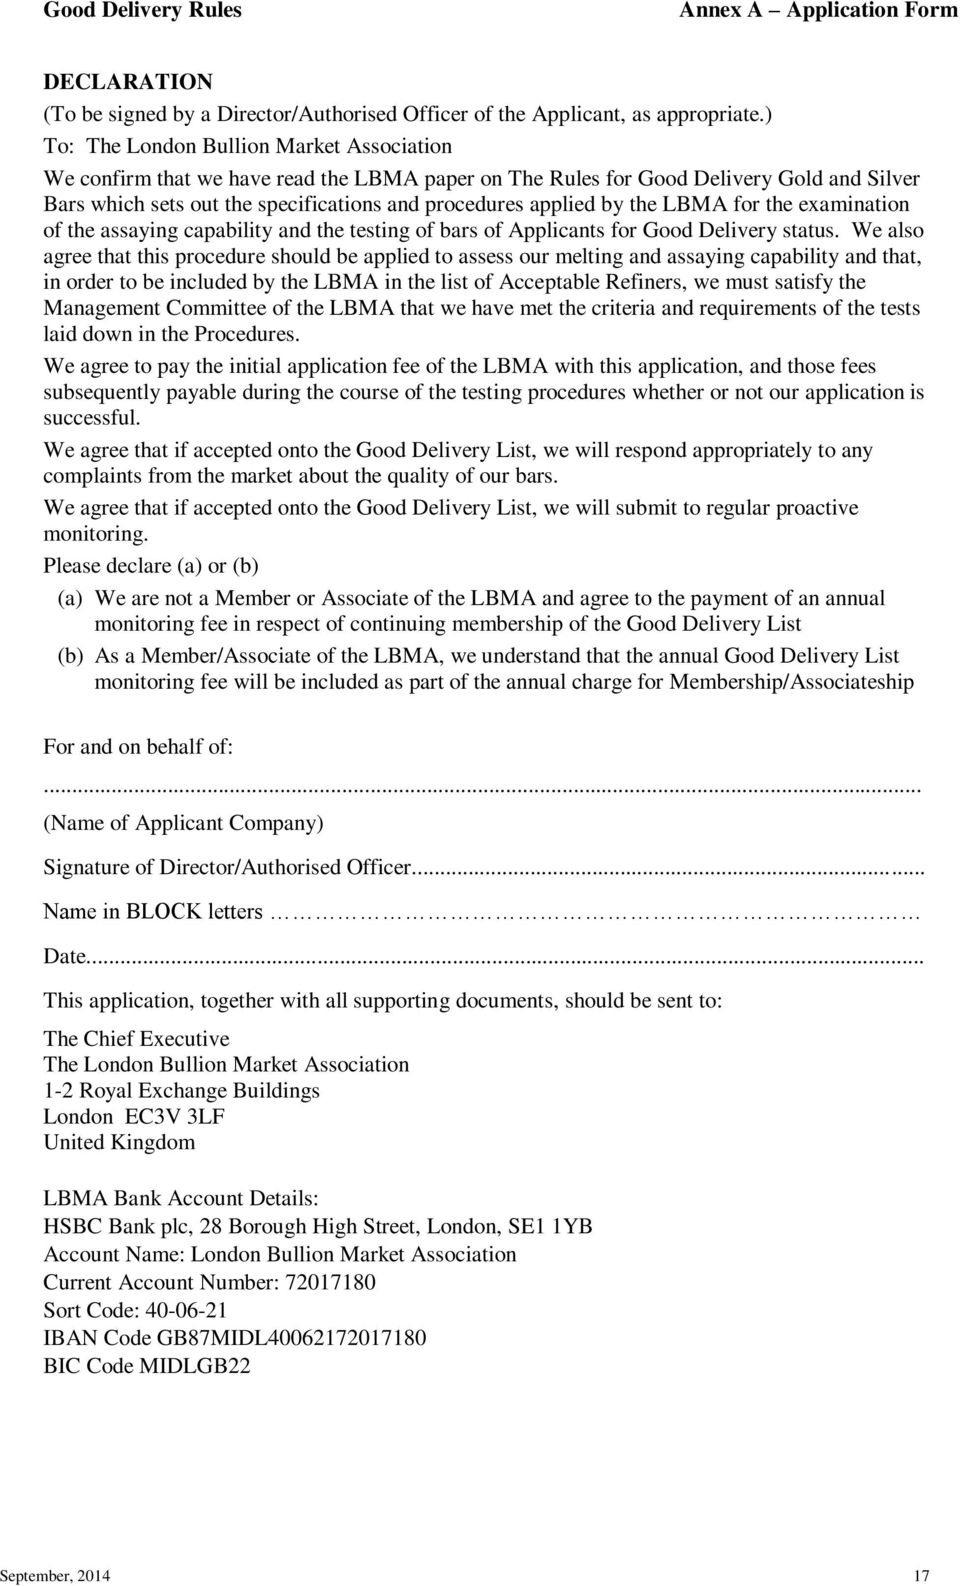 the LBMA for the examination of the assaying capability and the testing of bars of Applicants for Good Delivery status.